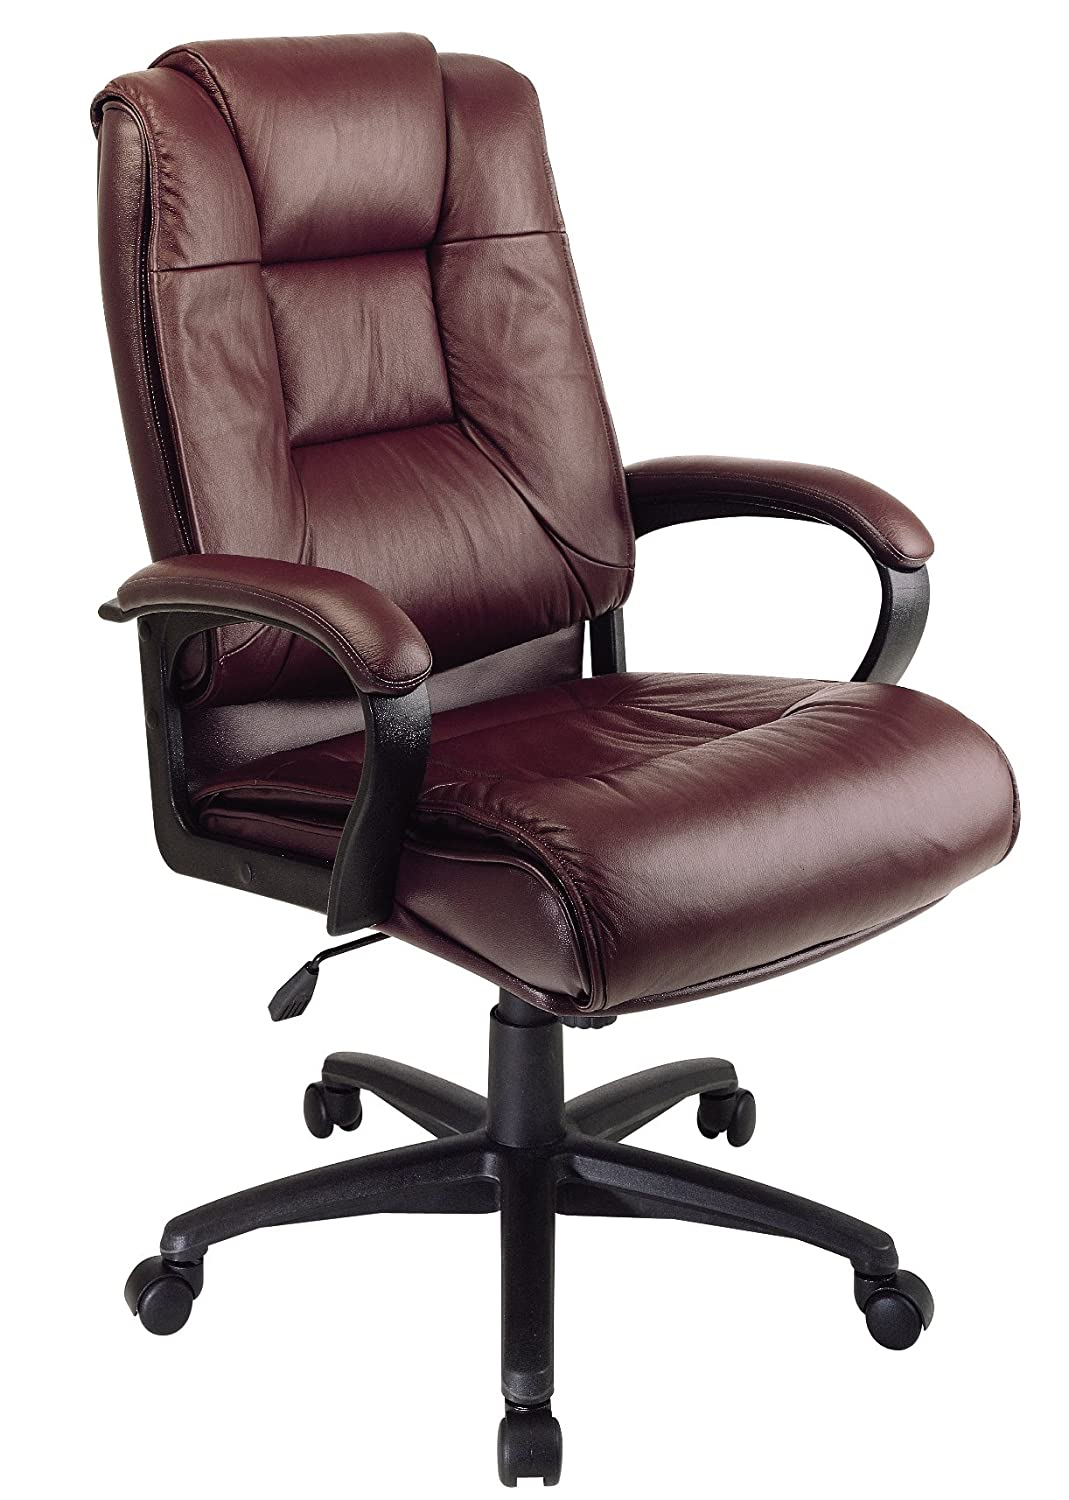 Leather Office Chairs Office Star Executive Chairs Reviewed Office Chairs For